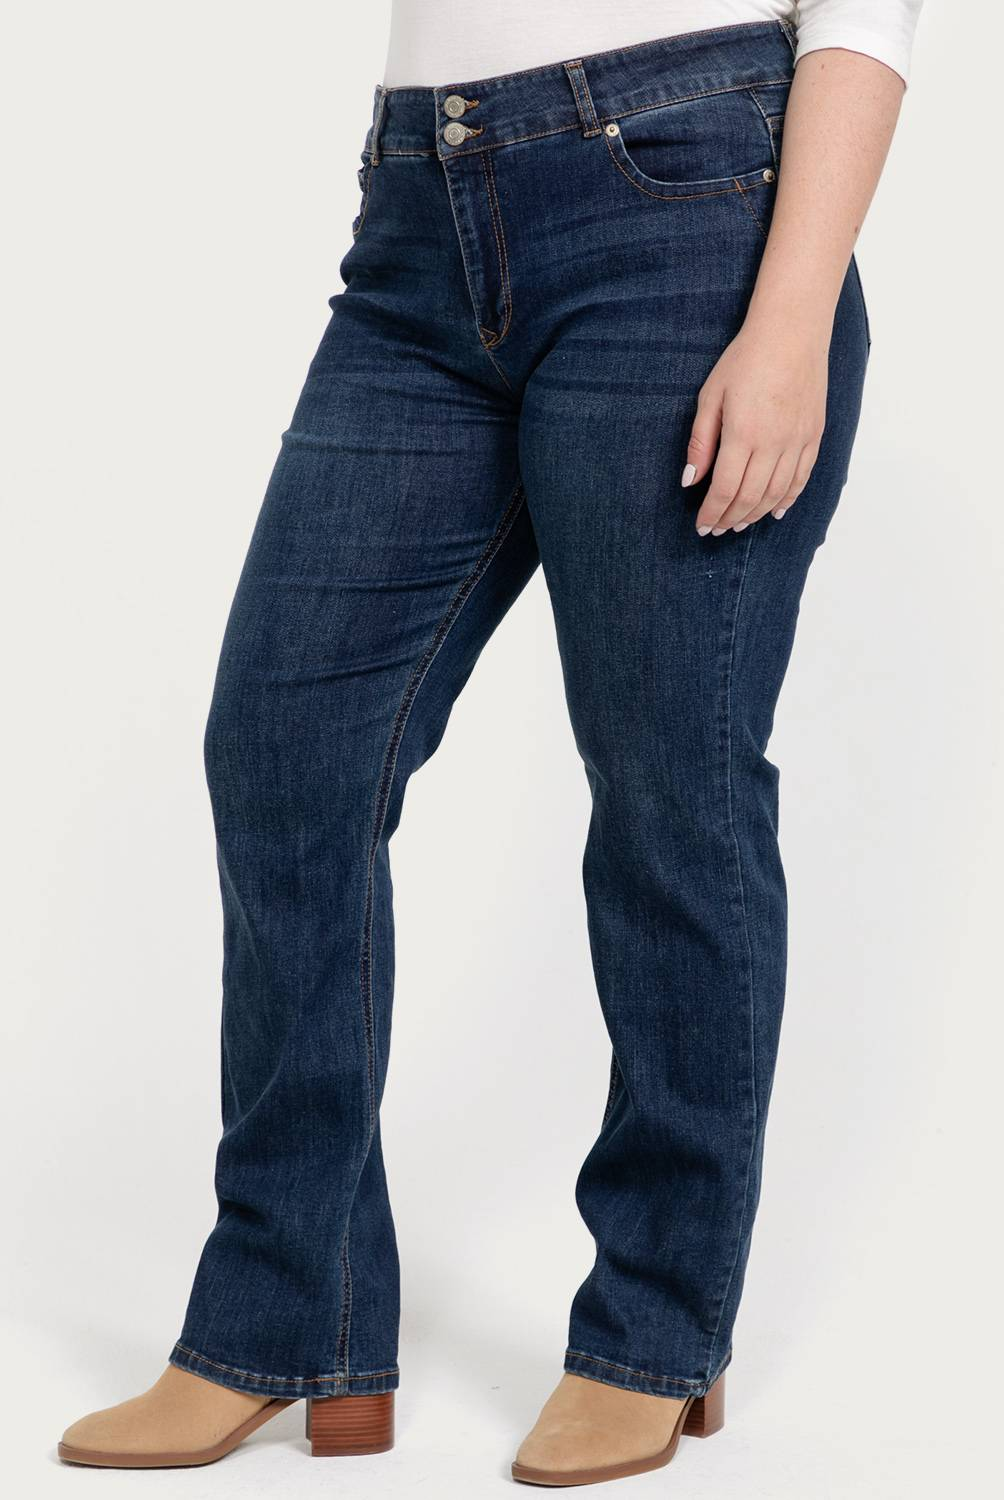 University Club - Jeans Recto Mujer